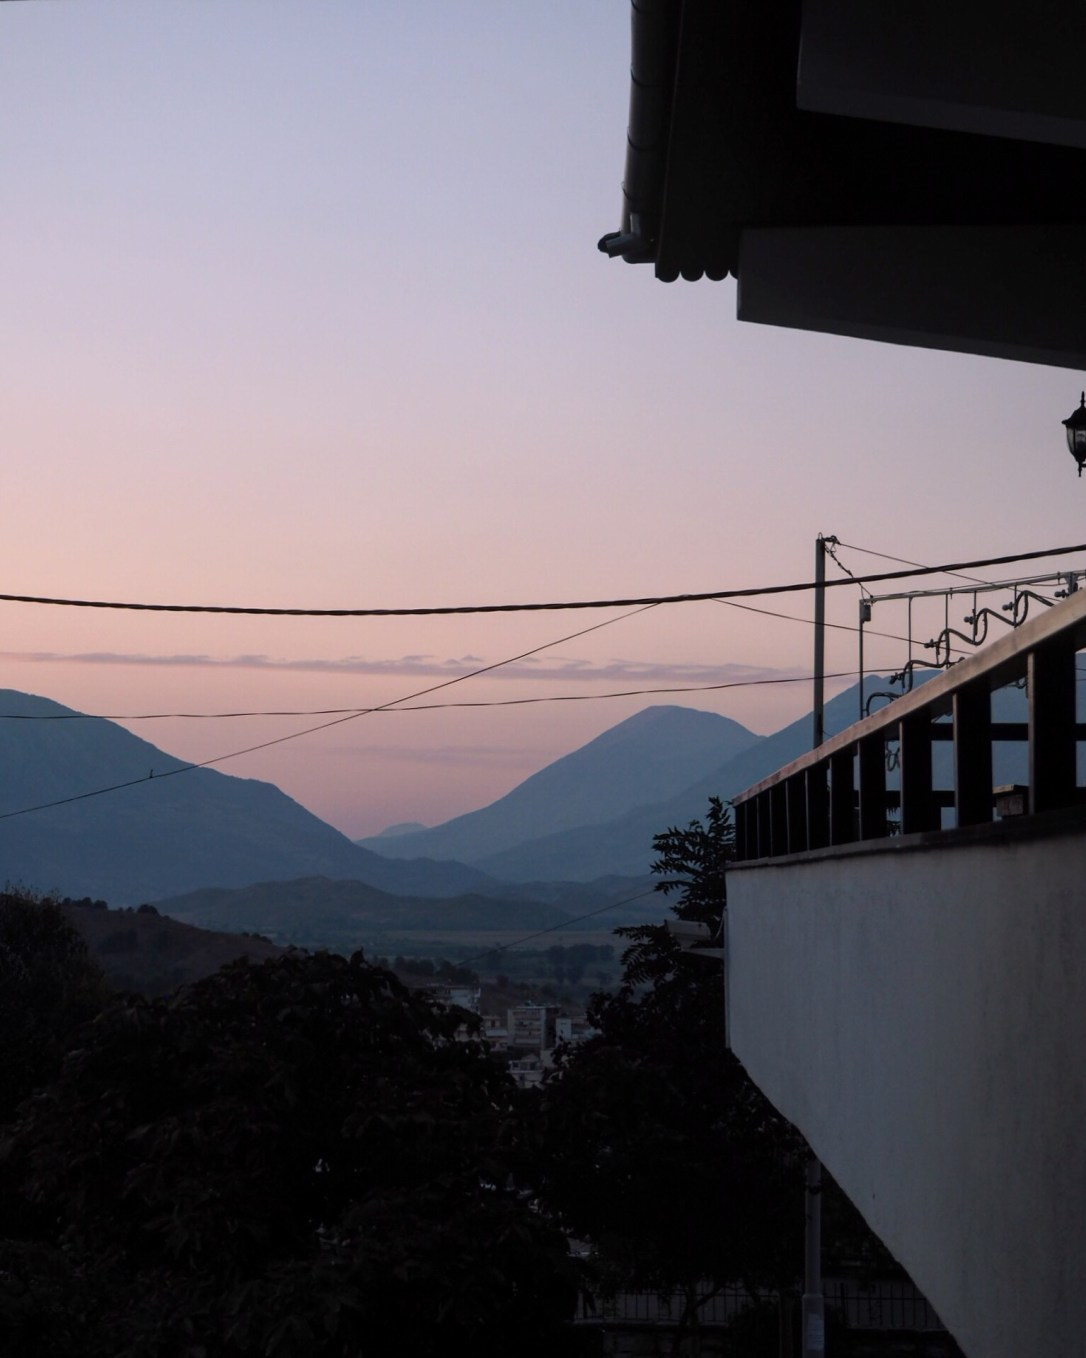 sunset over the mountains in Albania